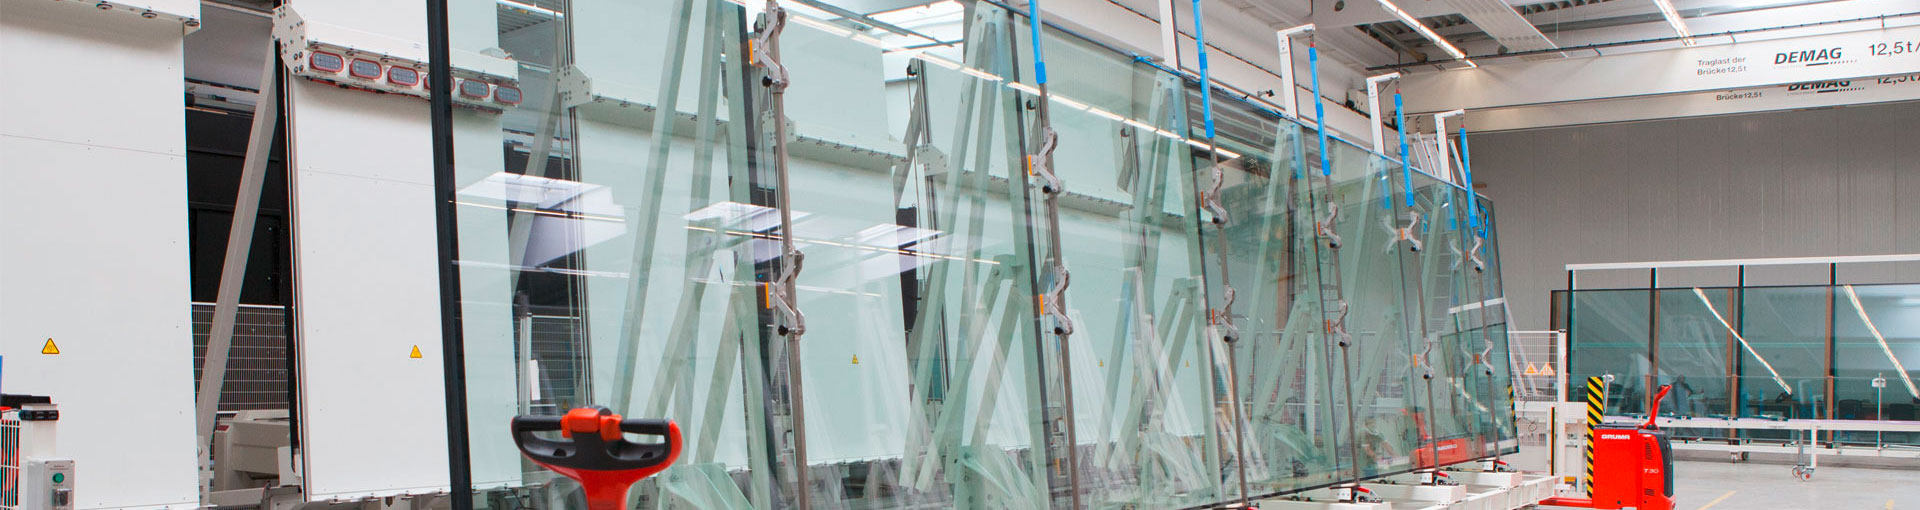 Insulating laminated glass production and manufacturing line